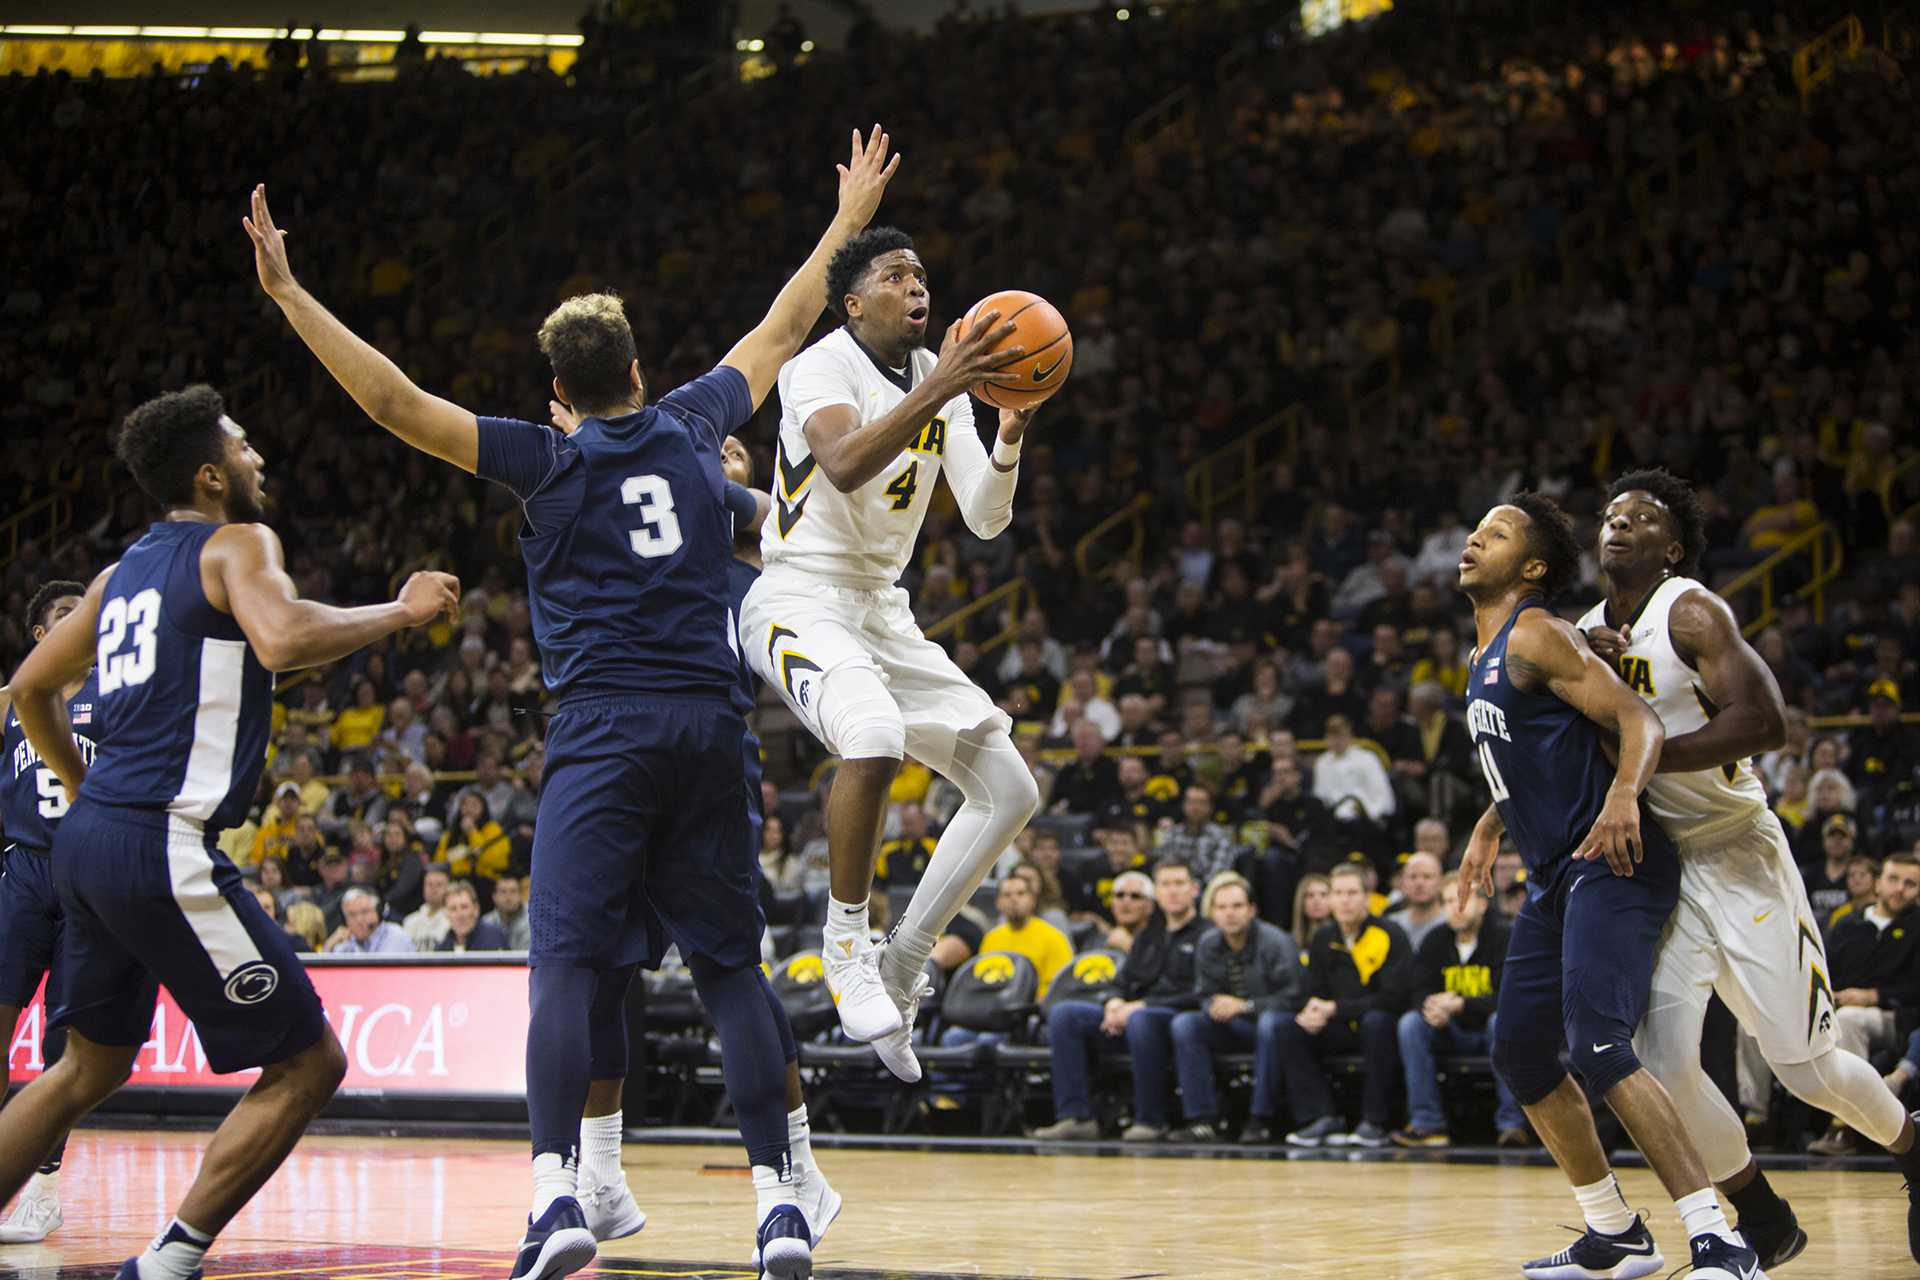 Iowa guard Isaiah Moss attempts a shot past Penn State forward Satchel Pierce during an Iowa/Penn State men's basketball game in Carver-Hawkeye Arena on Saturday, Dec. 2, 2017. The Nittany Lions defeated the Hawkeyes, 77-73. (Joseph Cress/The Daily Iowan)